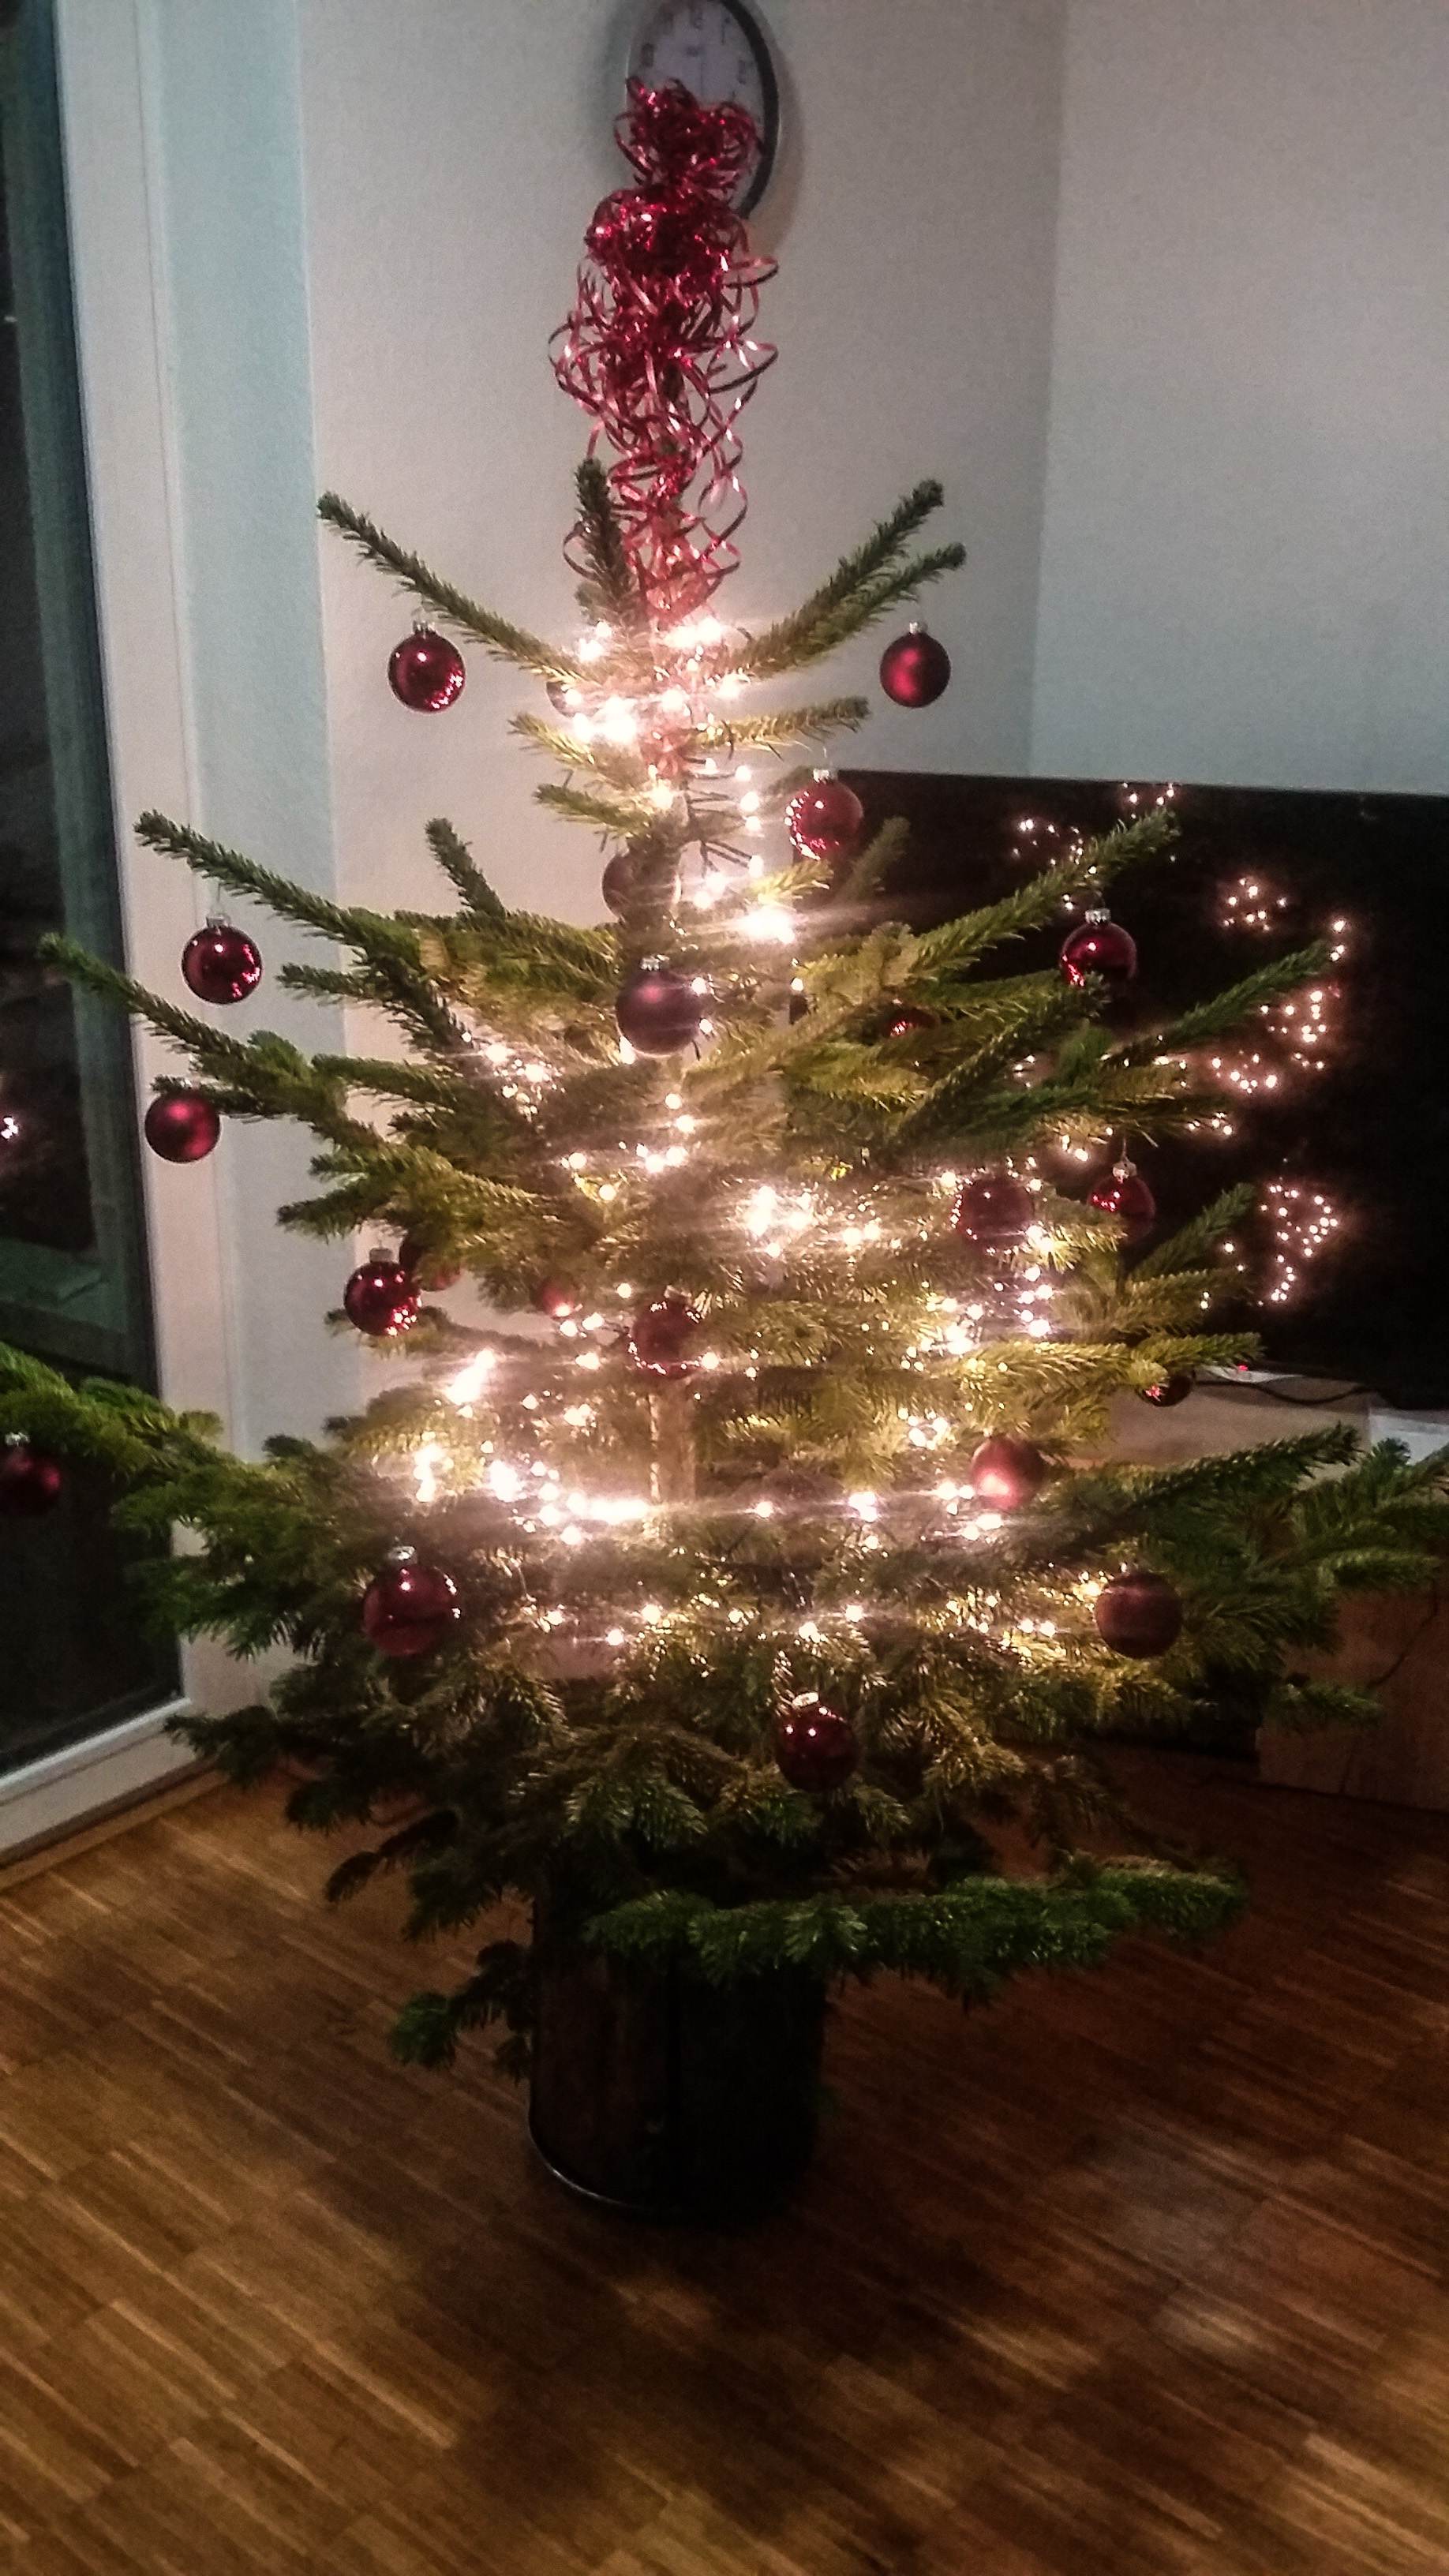 Our first real Christmas tree!